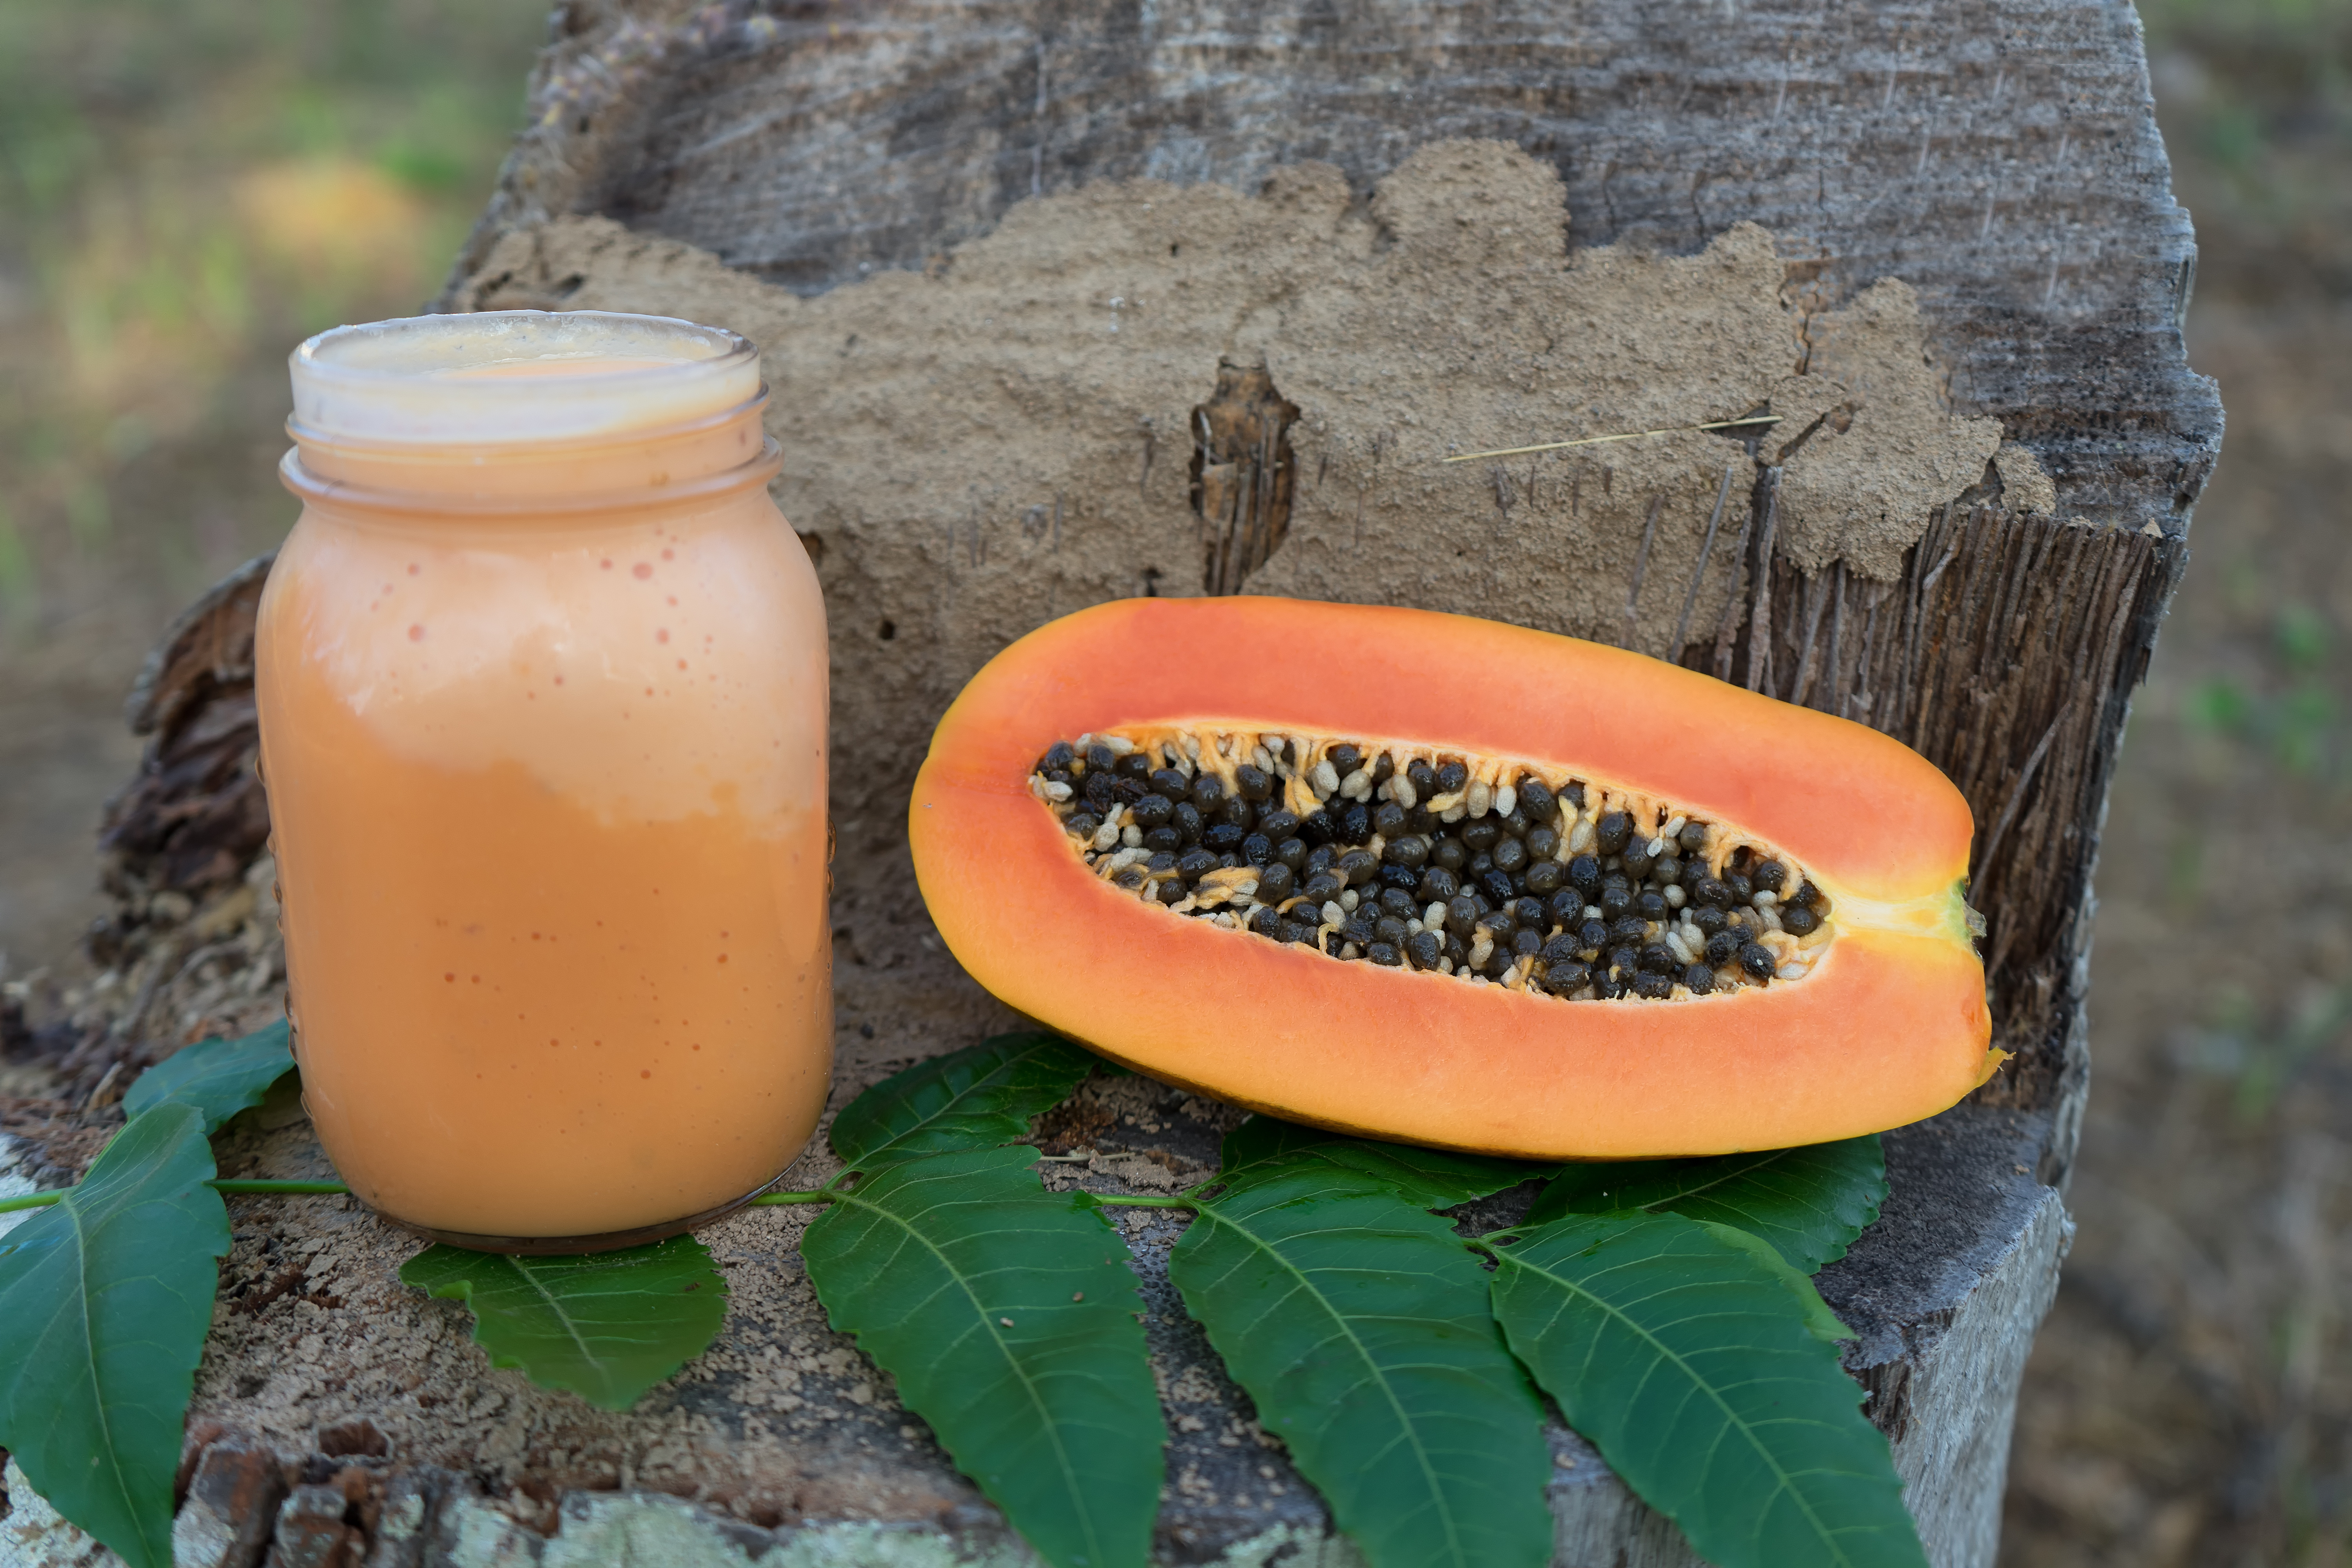 healthy fruit smuoothie with a papaya in bank, sweet fruit, healthy nutrition